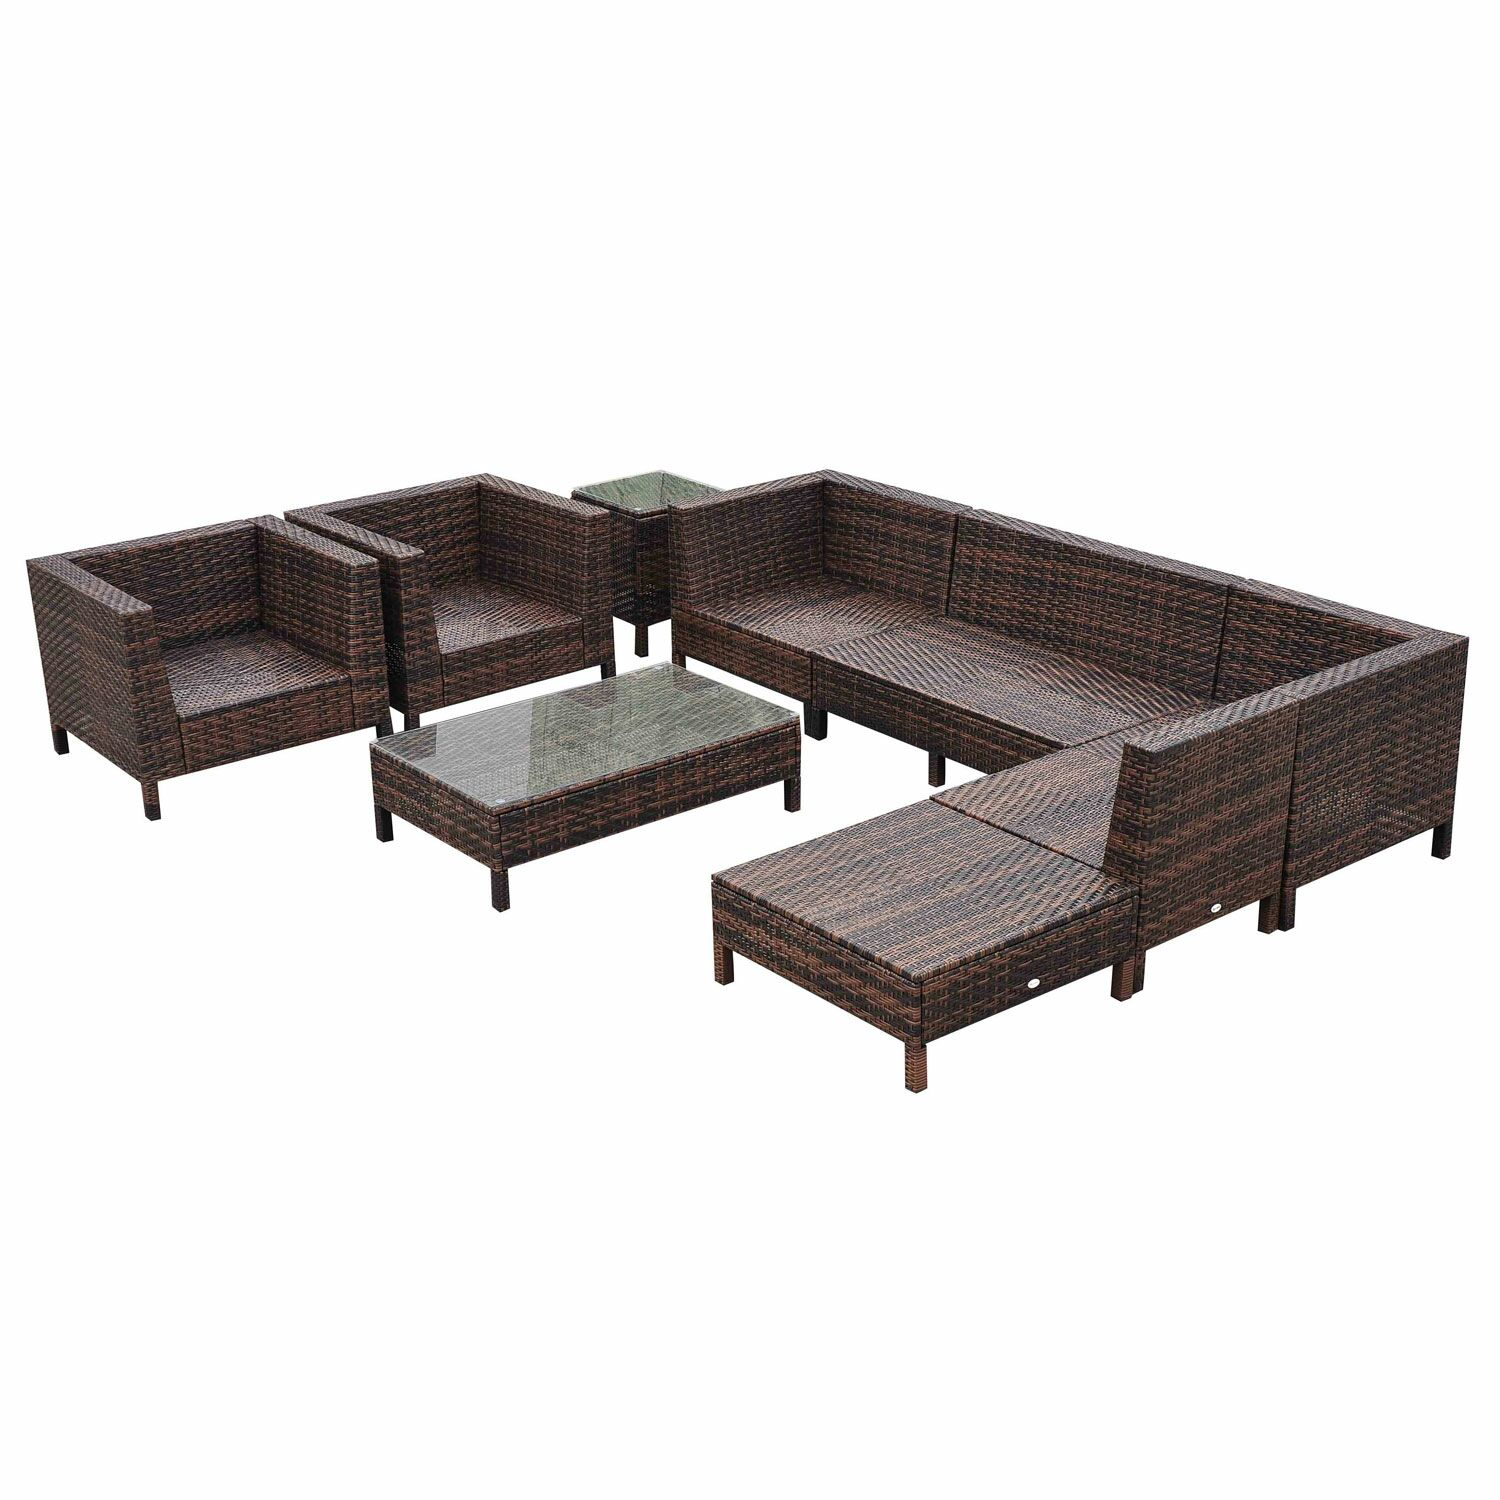 9 Piece Sectional Set with Cushions